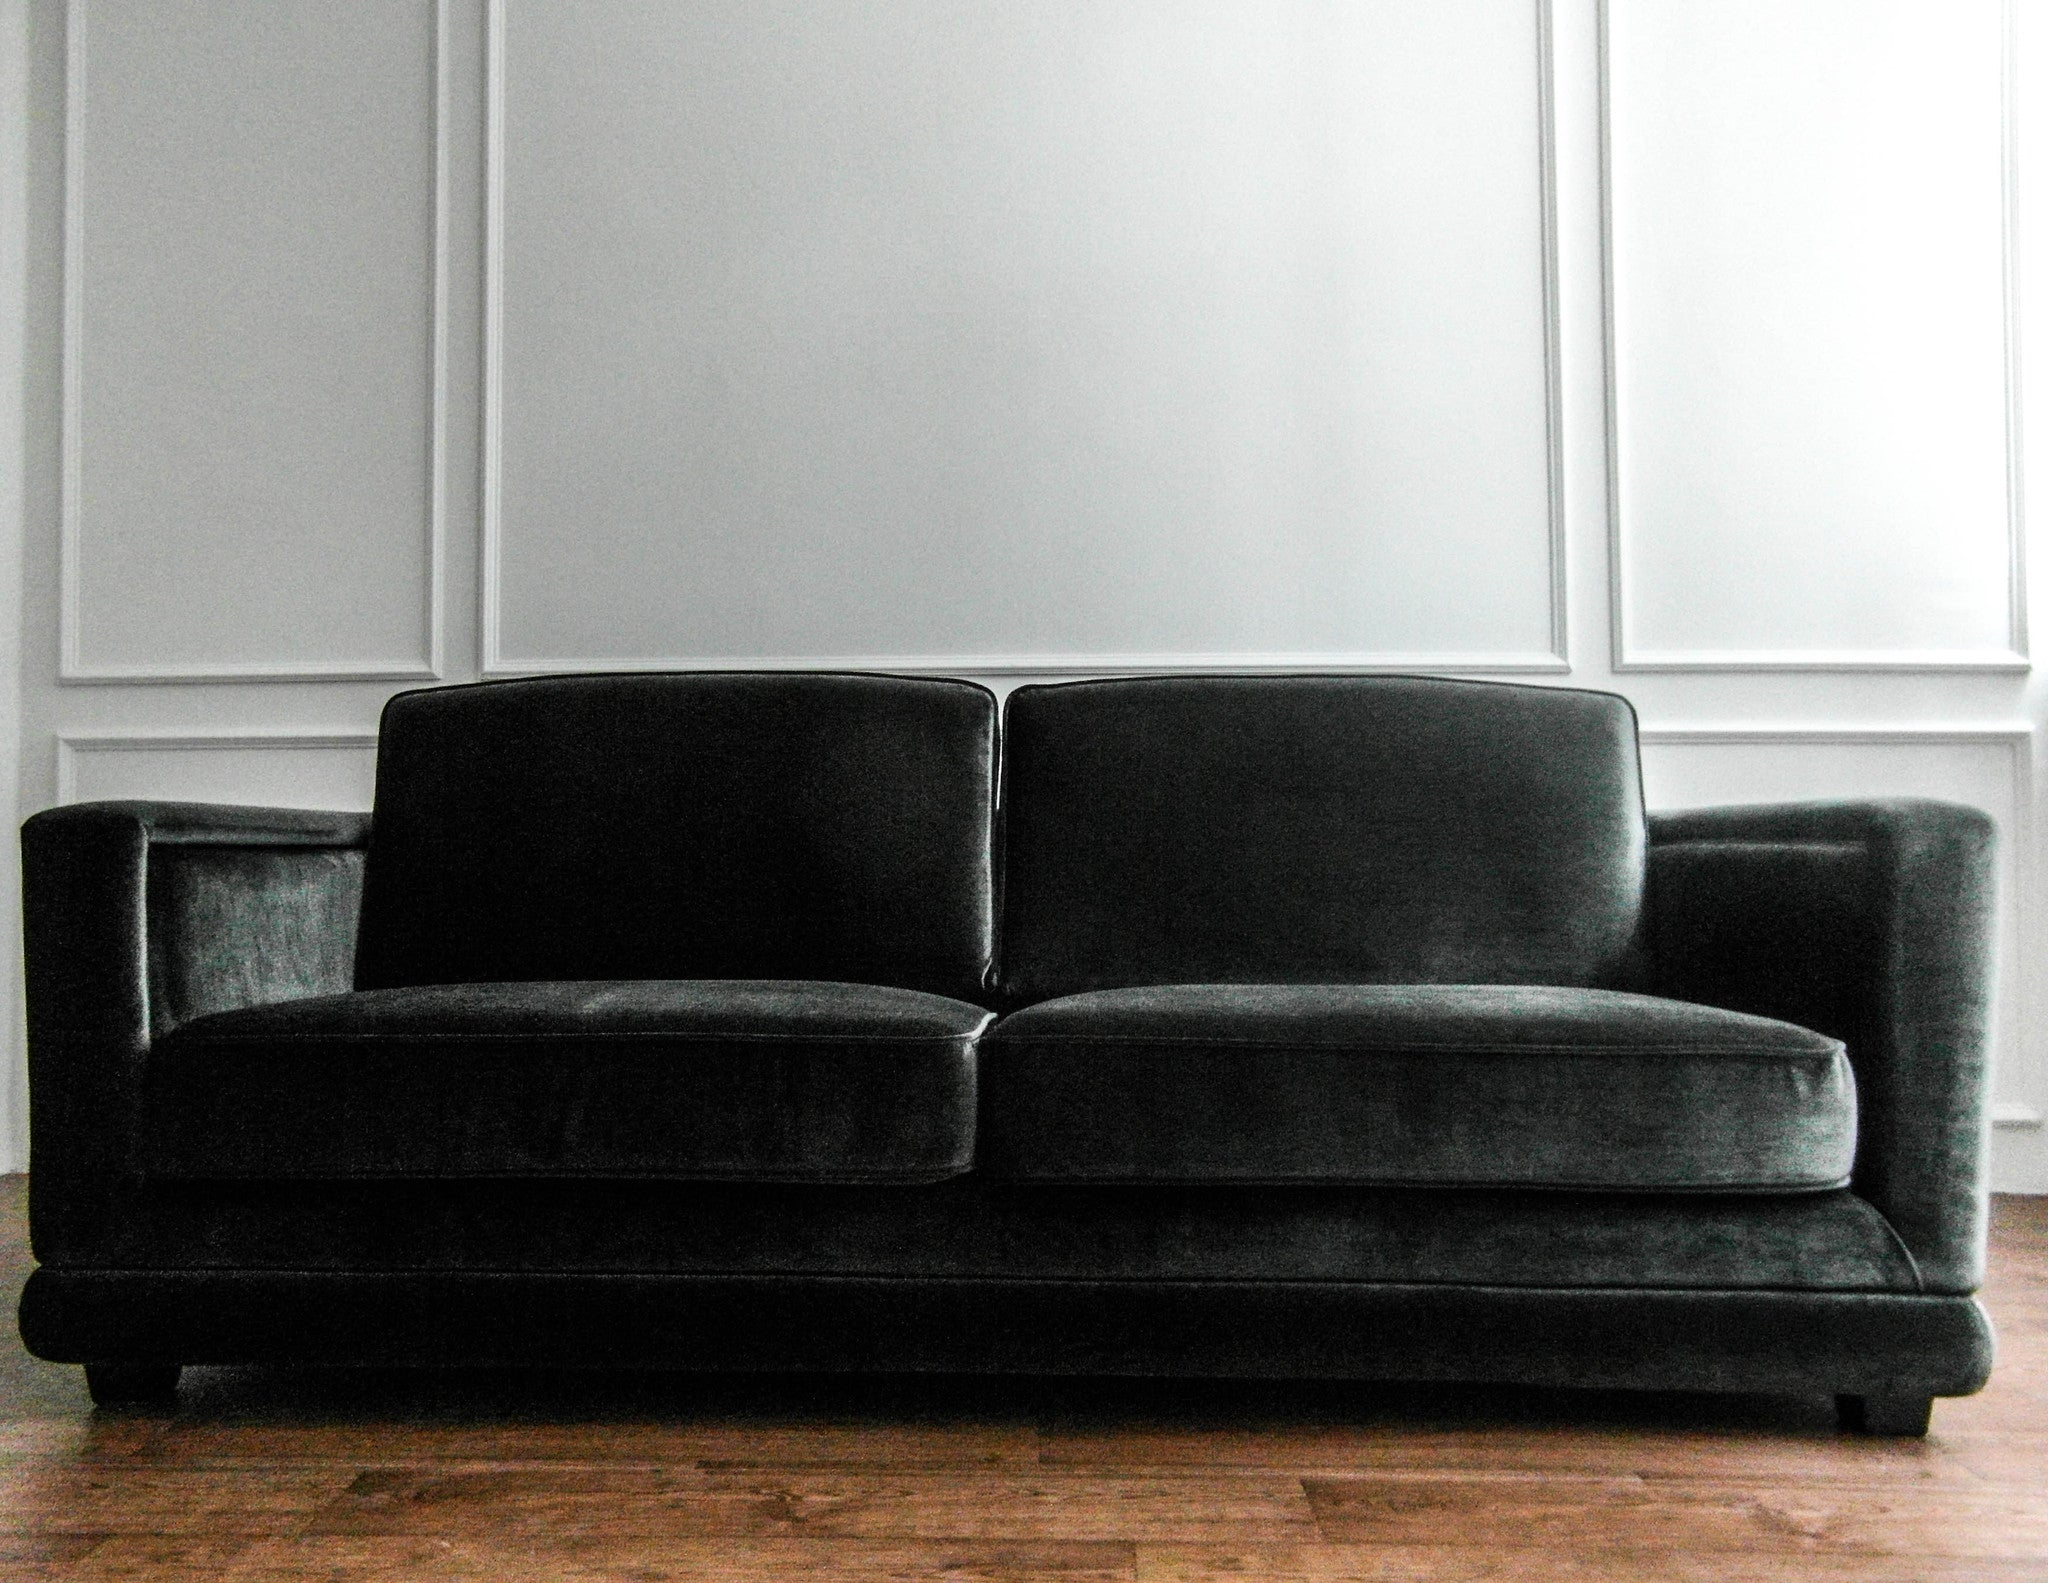 Knightbridge Sofa with a Modern Twist FinnAvenue – FINN AVENUE